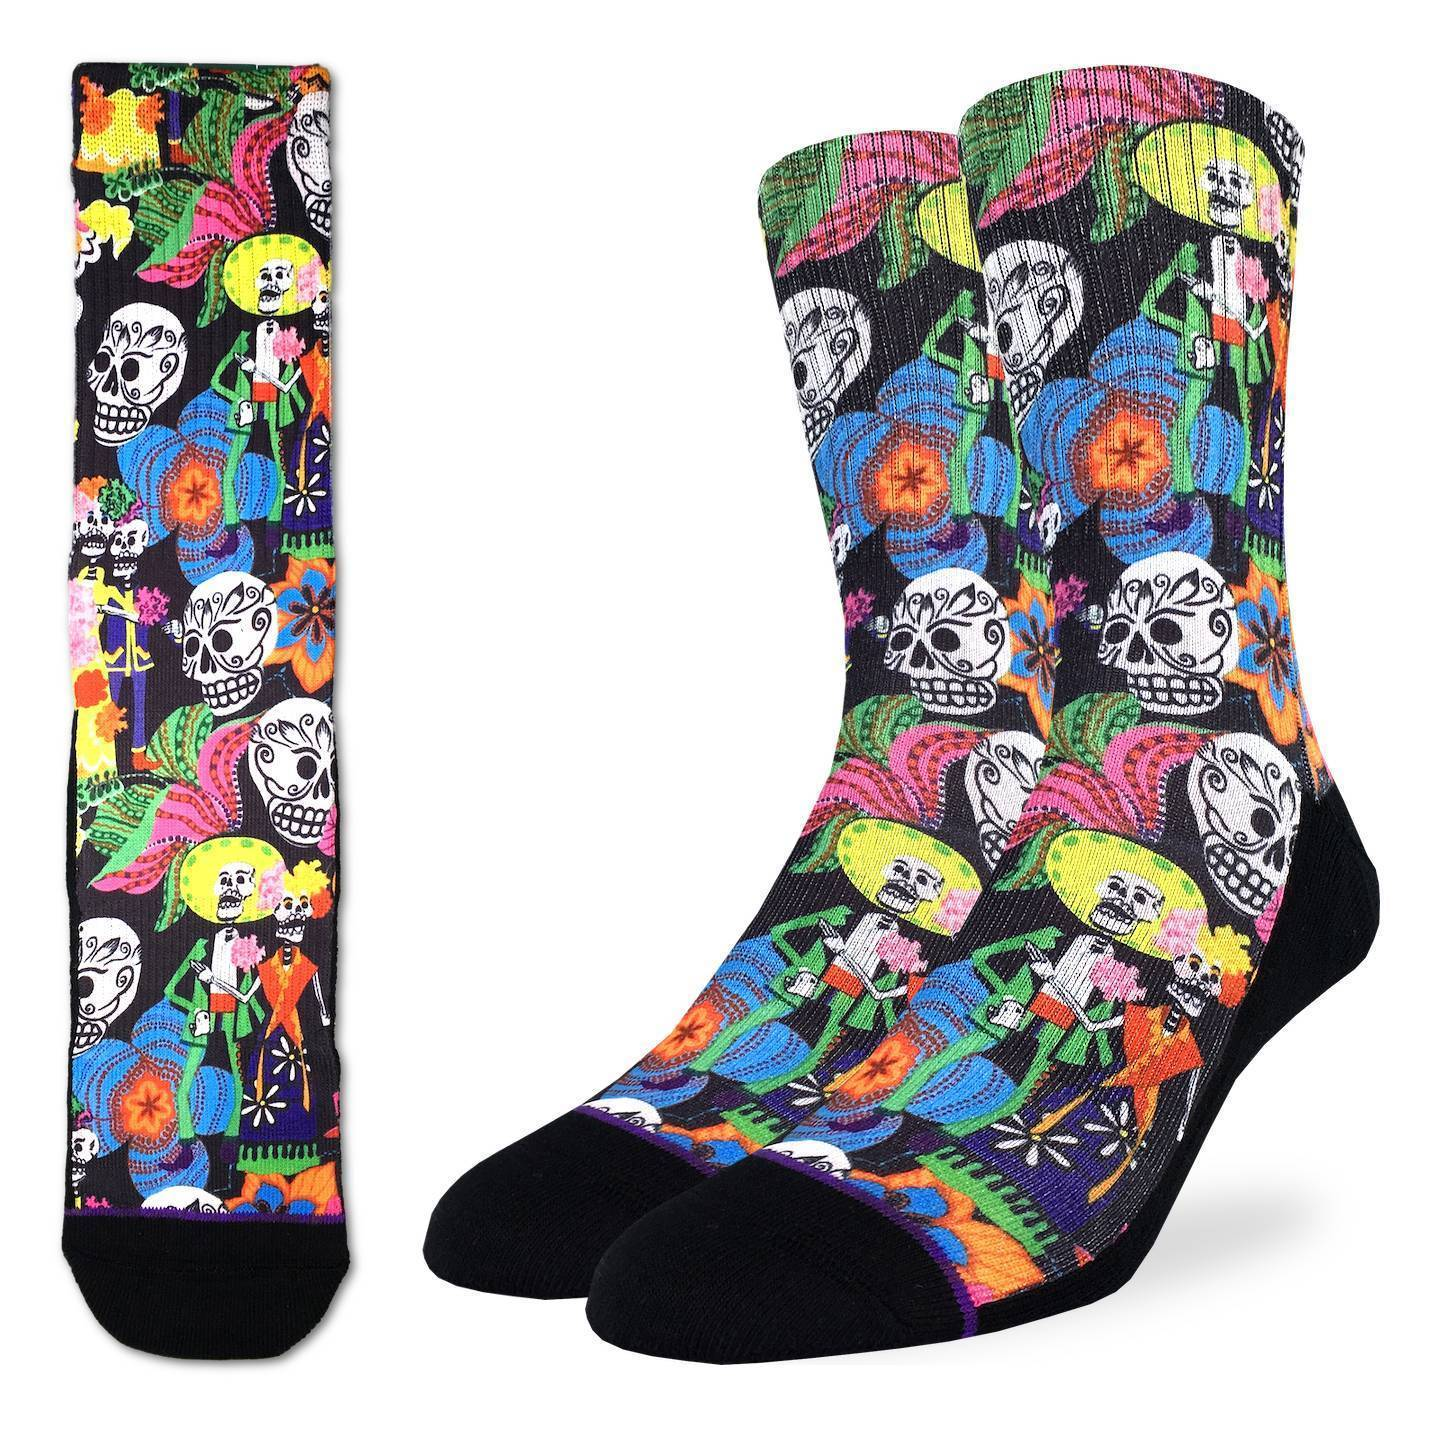 Men's Catrinos & Catrinas Skulls Socks - Good Luck Sock